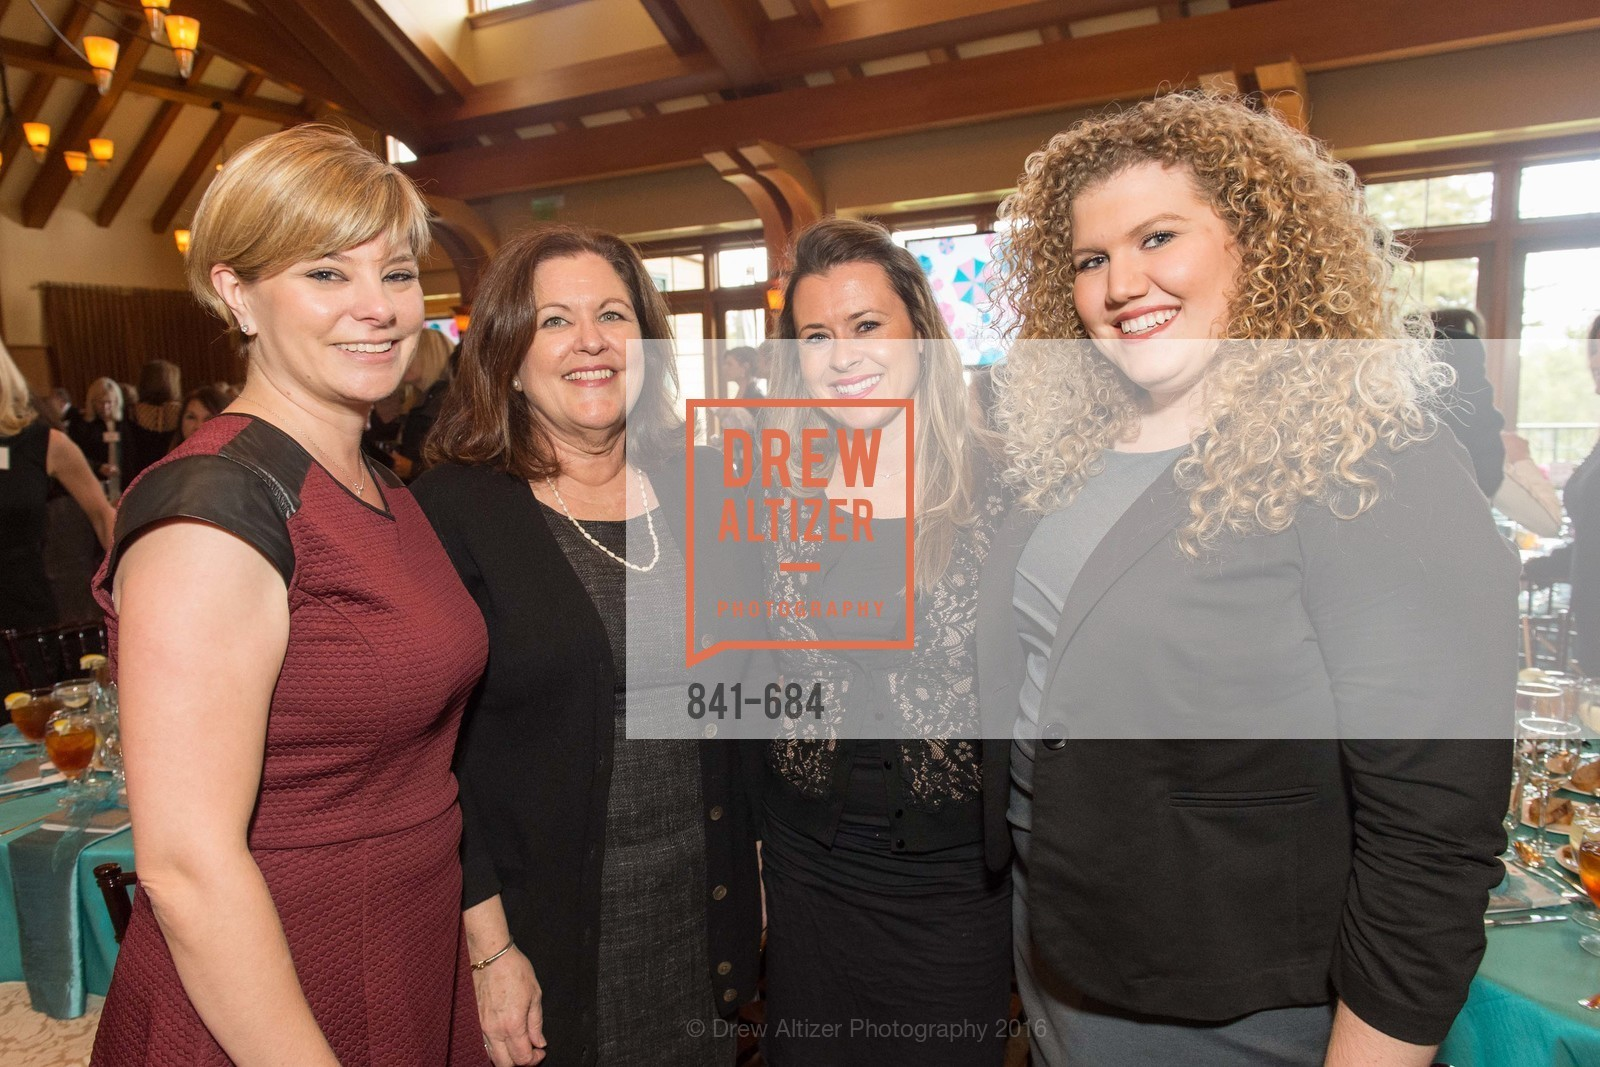 Lyndia Ayala-Azevedo, Terri Donohoe, Jessica Foran, Jenna Lunger, Under One Umbrella, Sharon Heights Golf and Country Club, January 13th, 2016,Drew Altizer, Drew Altizer Photography, full-service agency, private events, San Francisco photographer, photographer california